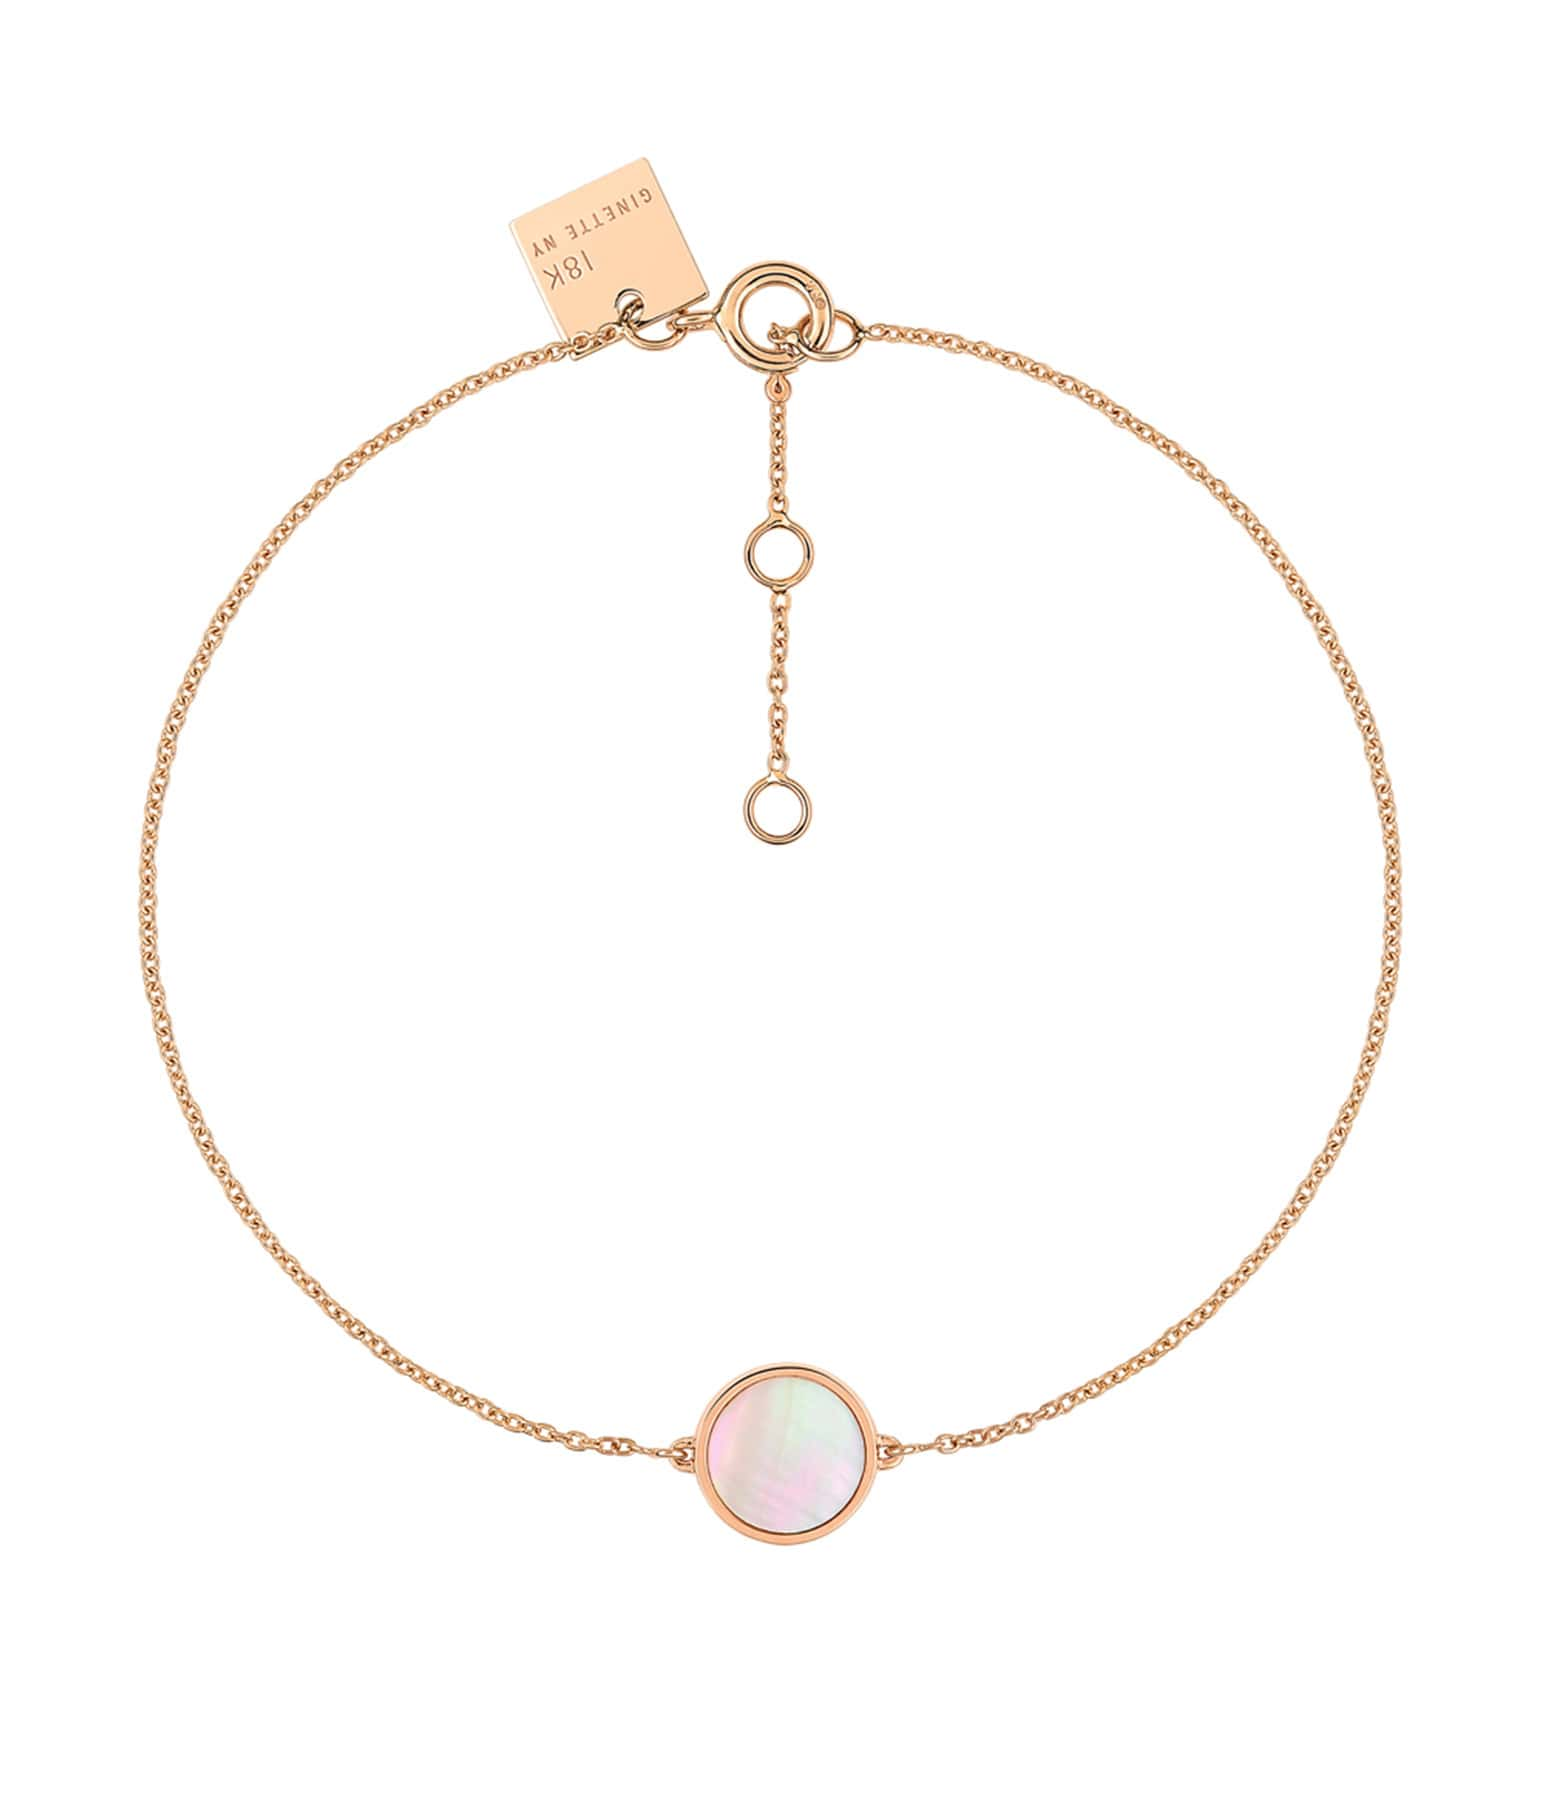 GINETTE NY - Bracelet Ever Mini Disc Or Rose Nacre Rose